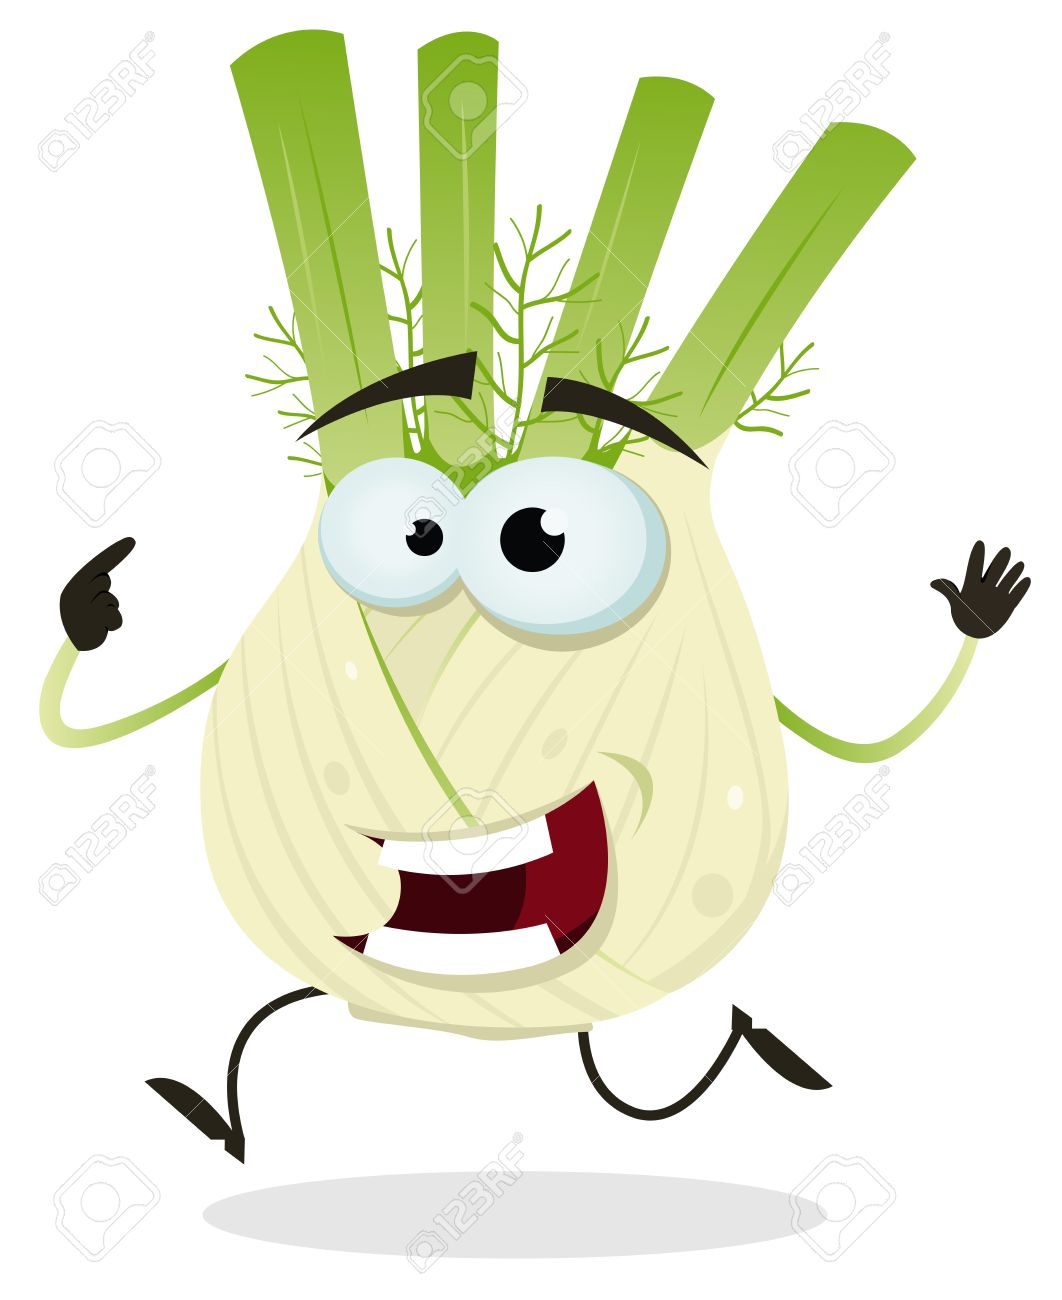 Illustration Of A Funny Happy Cartoon Fennel Vegetable Character.